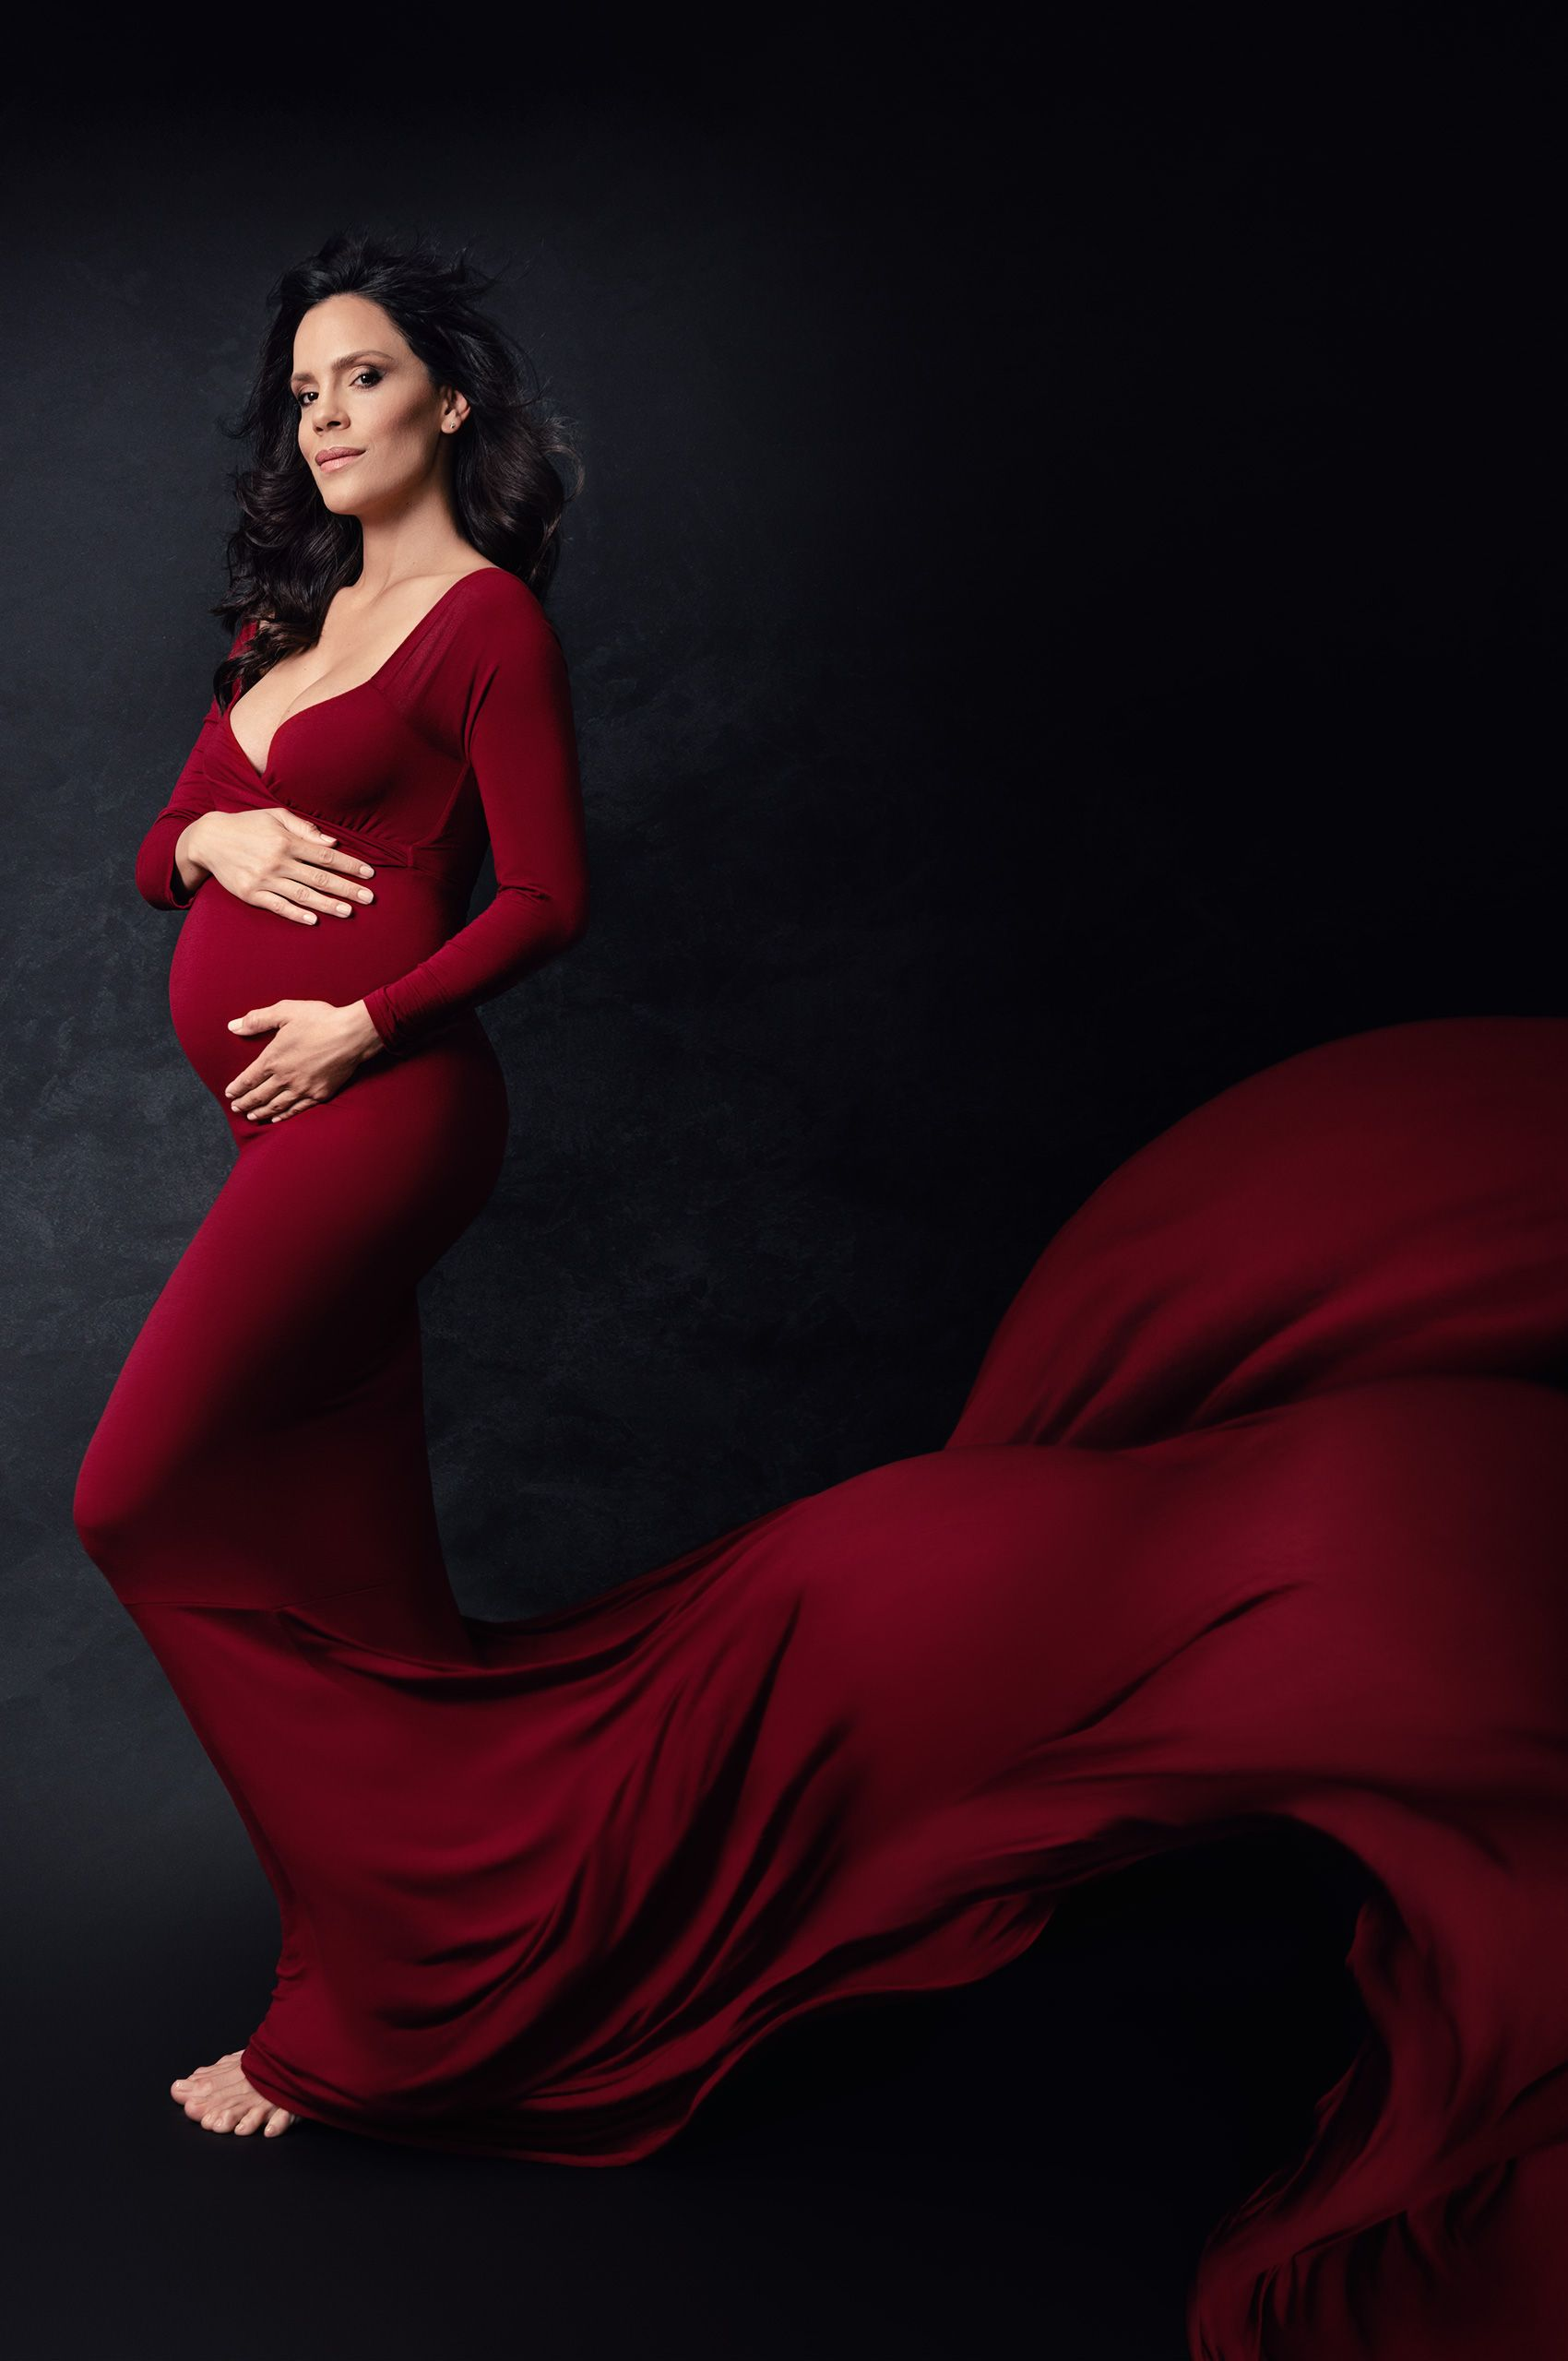 Pregnancy photography LA